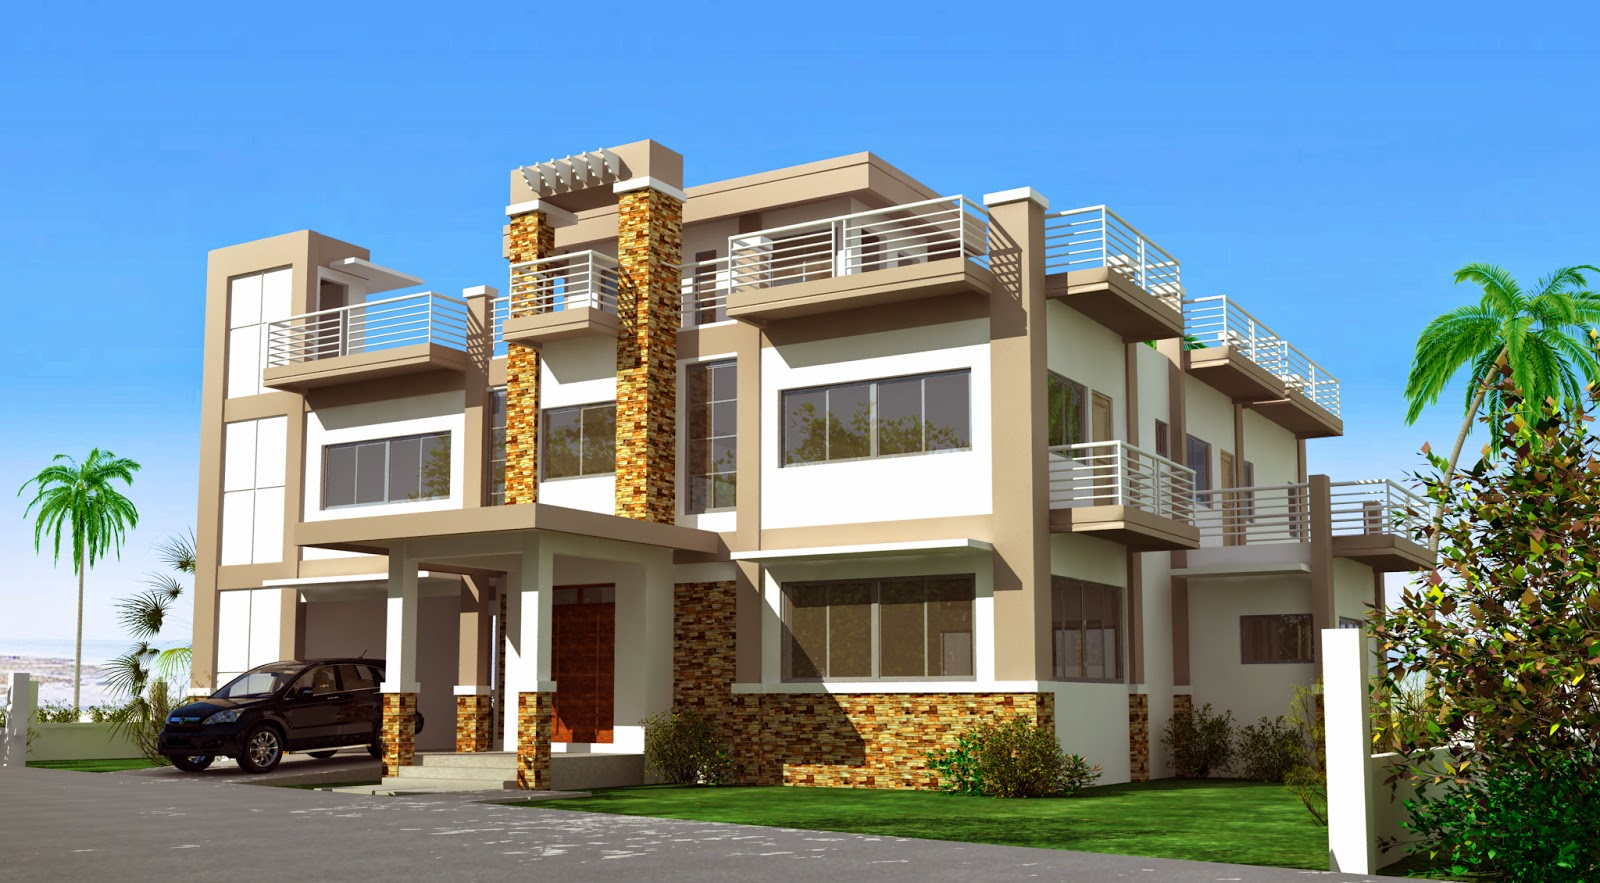 Beautiful houses in the philippines pictures house pictures for Stunning houses pictures